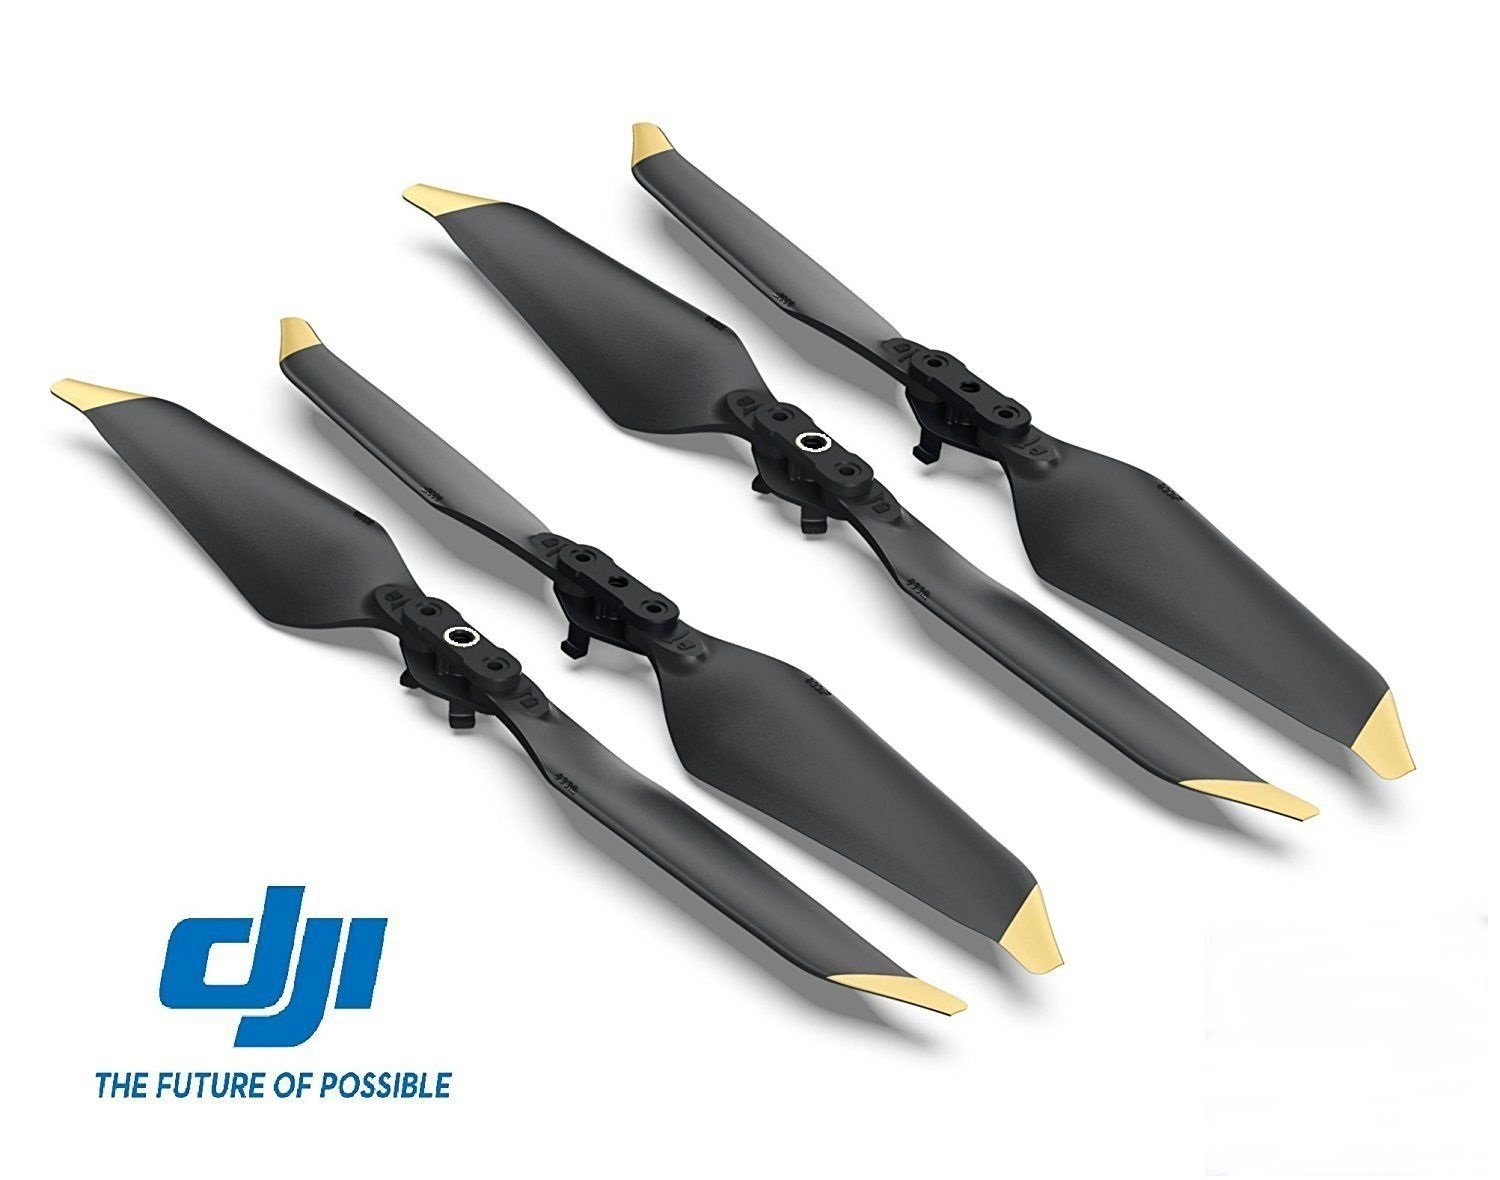 DJI Genuine Low-Noise Quick-Release Propellers for Mavic Pro or Mavic Pro Platinum (Gold), 2 Pairs